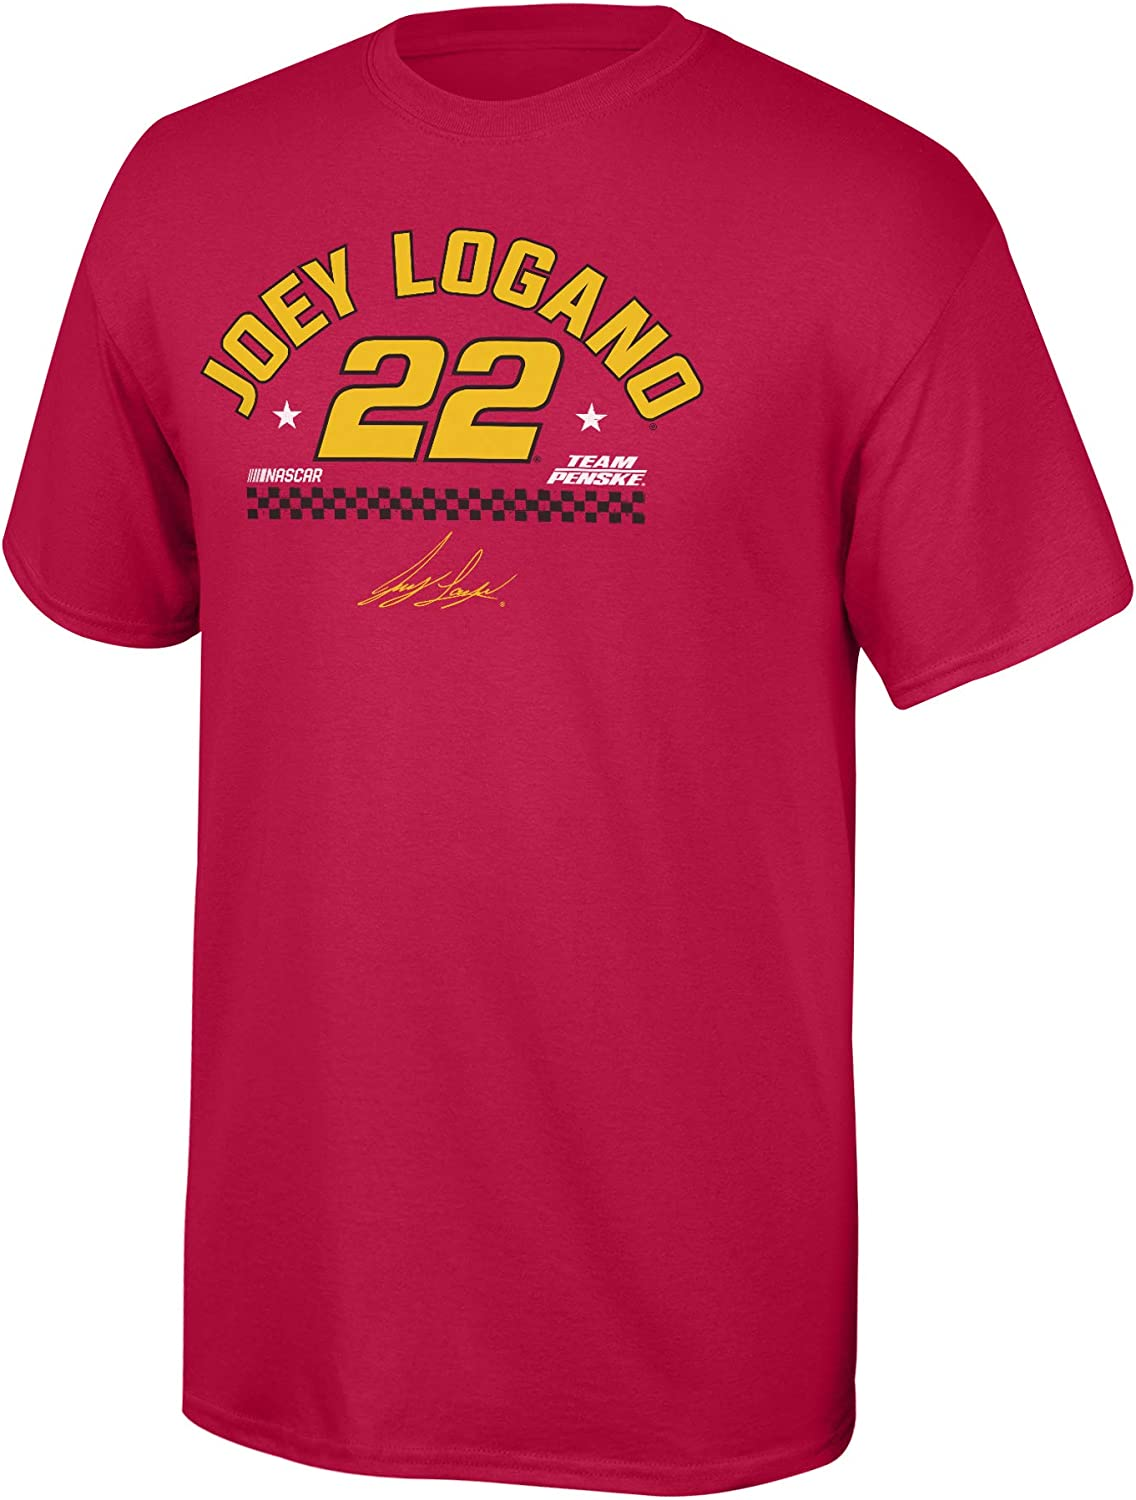 NASCAR Driver Merchandise Fan Favorite Arched Name Cotton Short Sleeve Tee